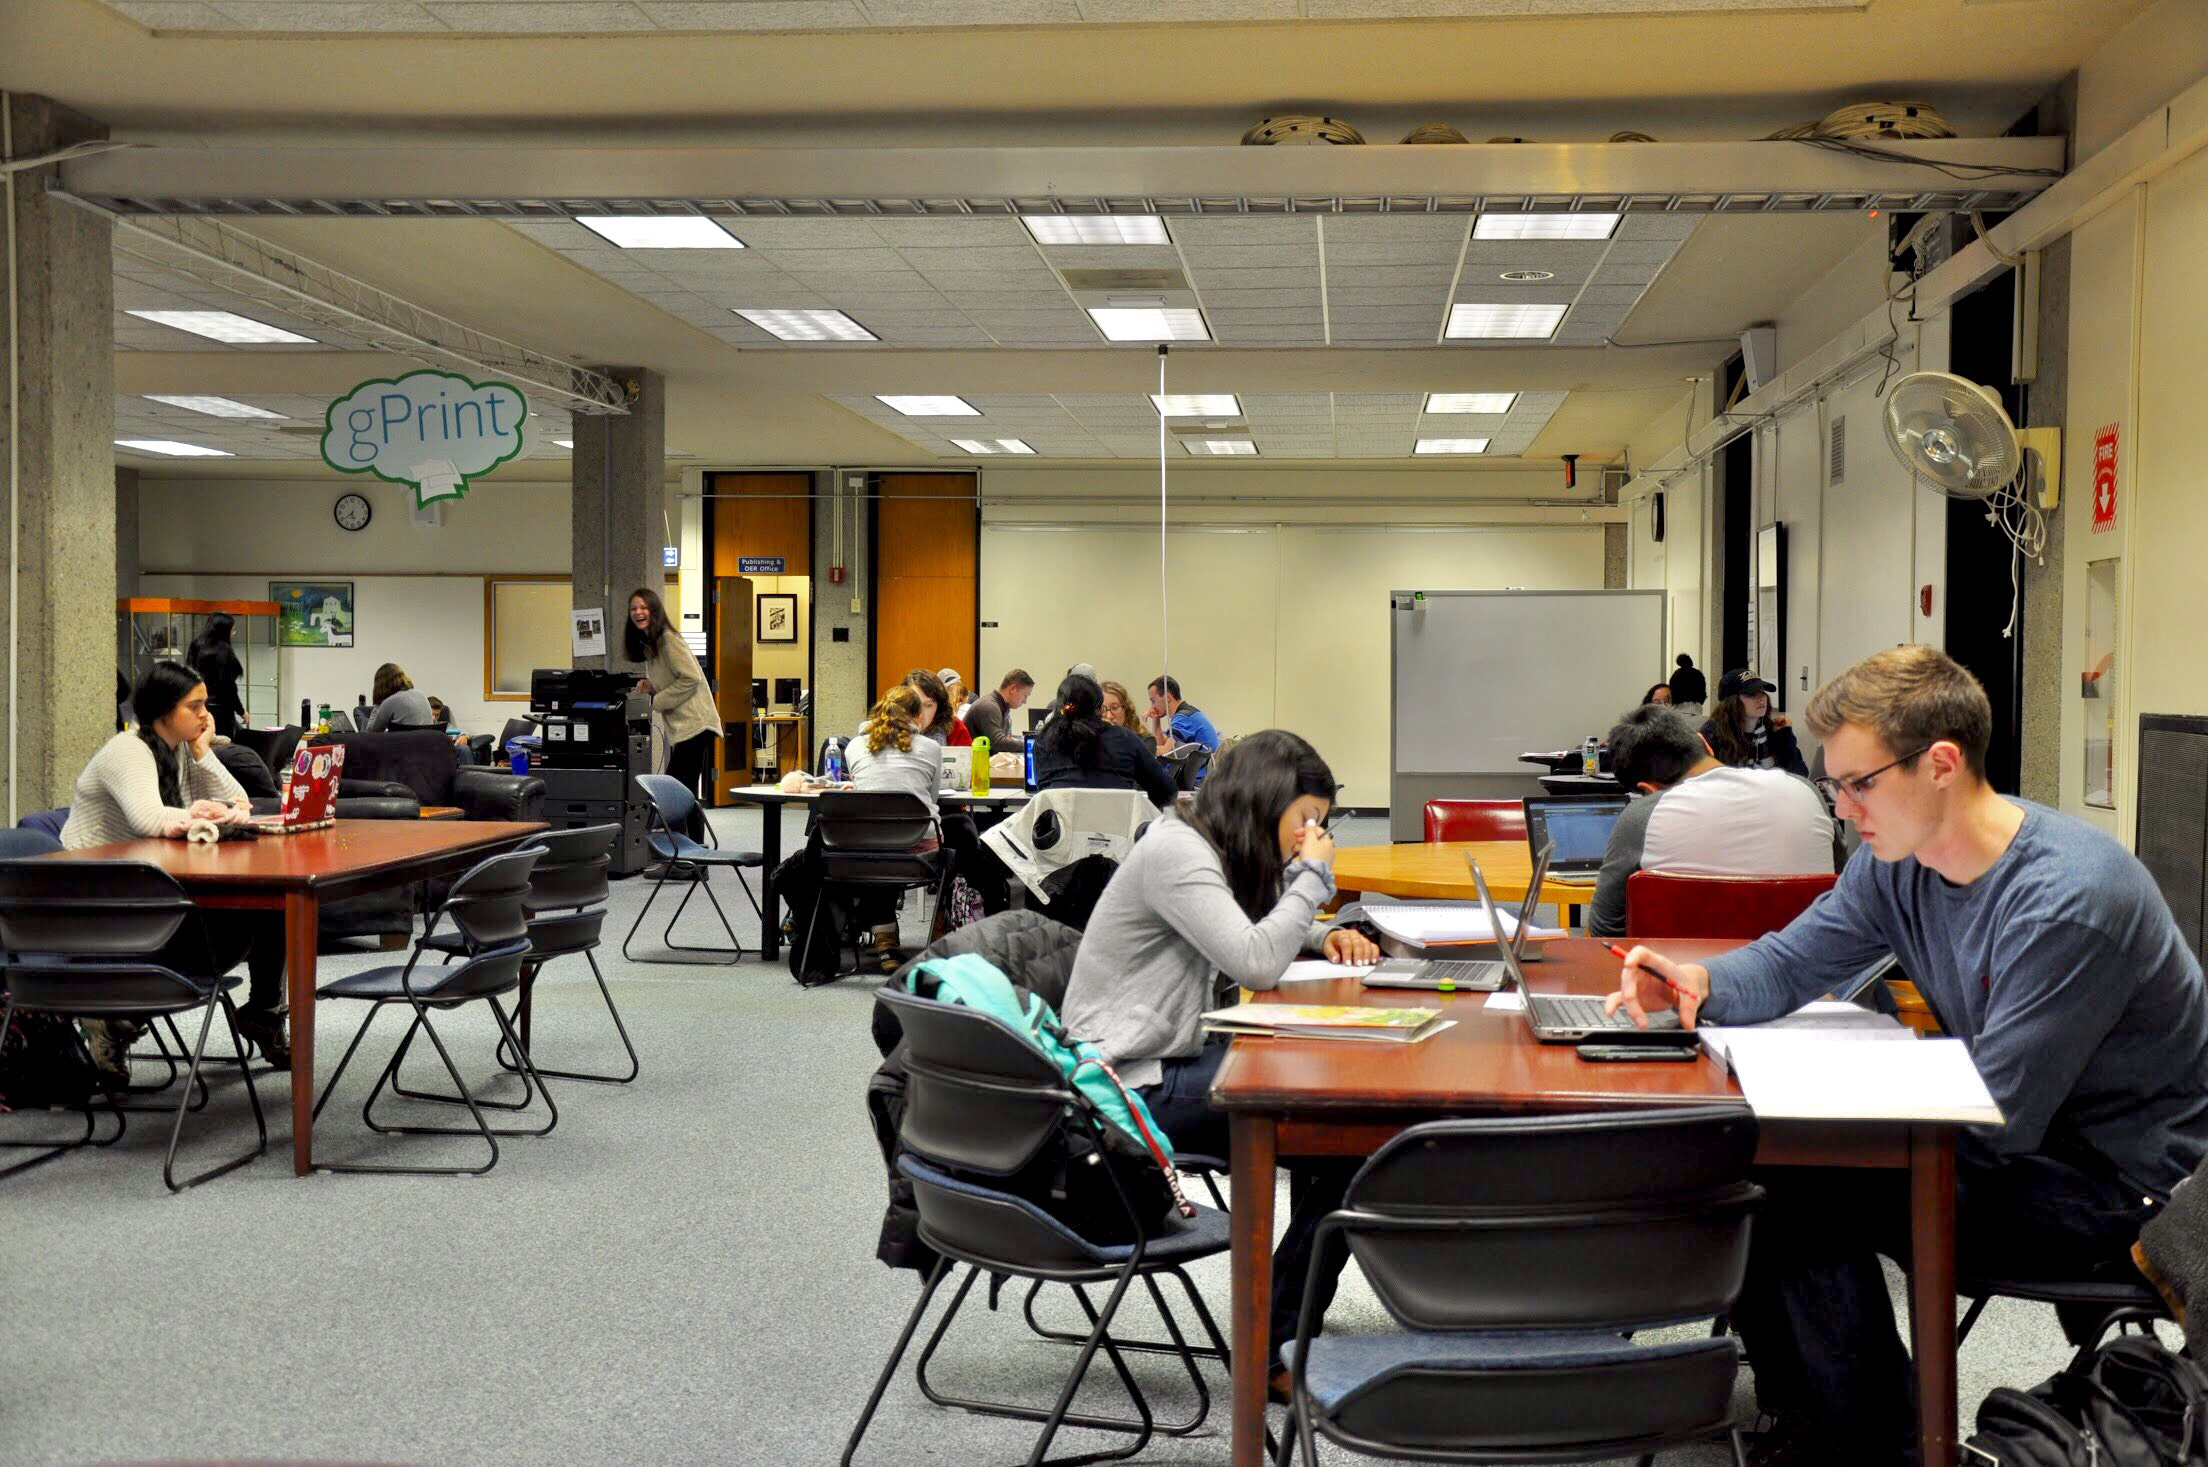 Students work in Milne Library in an area that previously housed library administrators. The library will continue similar renovations throughout the calendar year in order to meet students' desires for increased study space. (Annalee Bannison/Photo Editor)